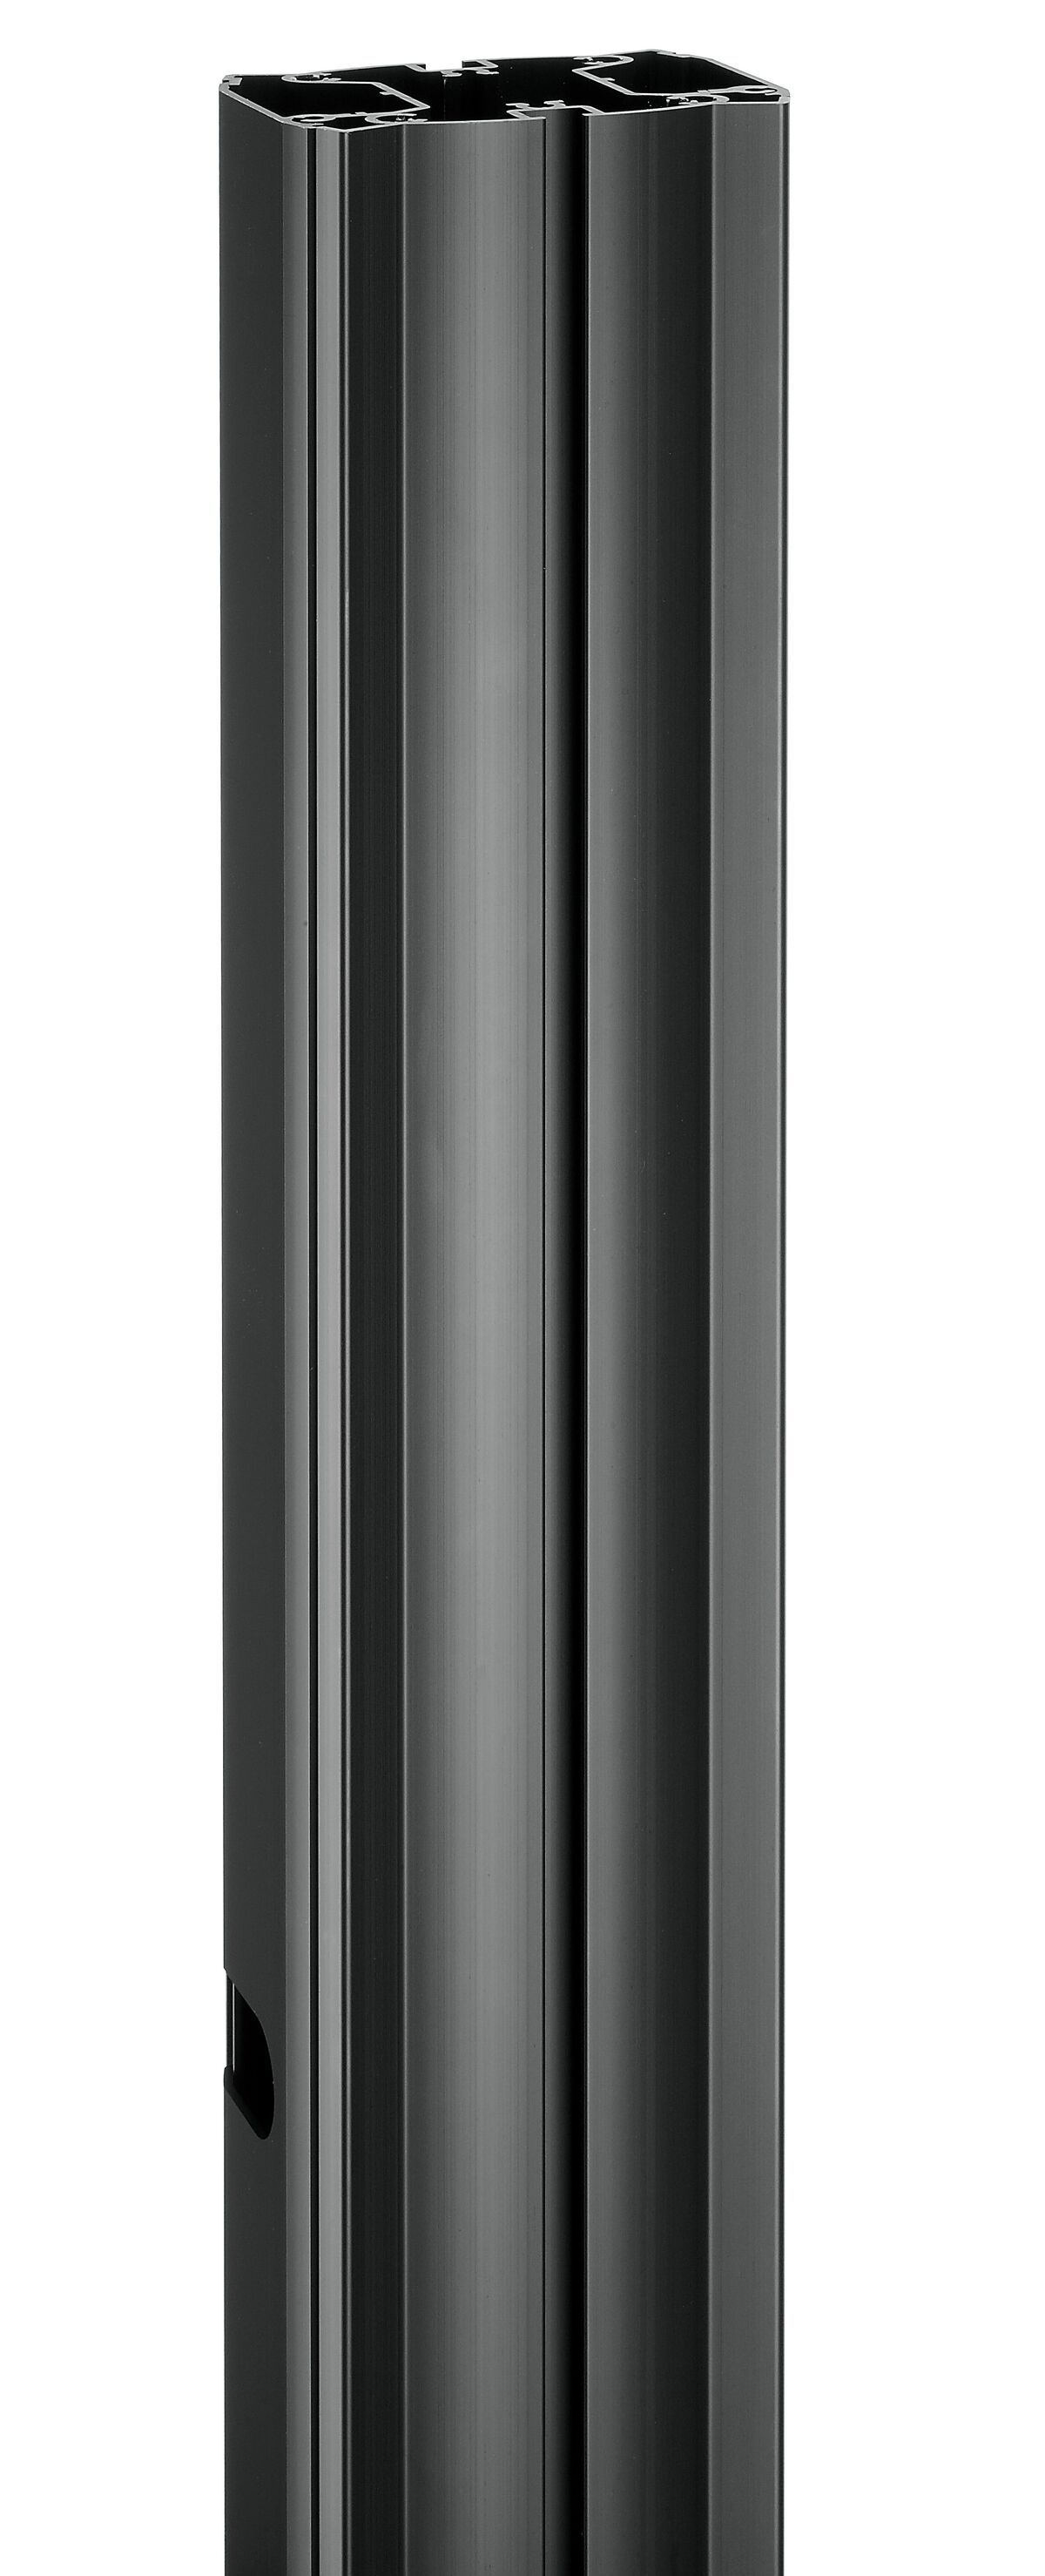 Vogel's PUC 2718 Pole black - Product